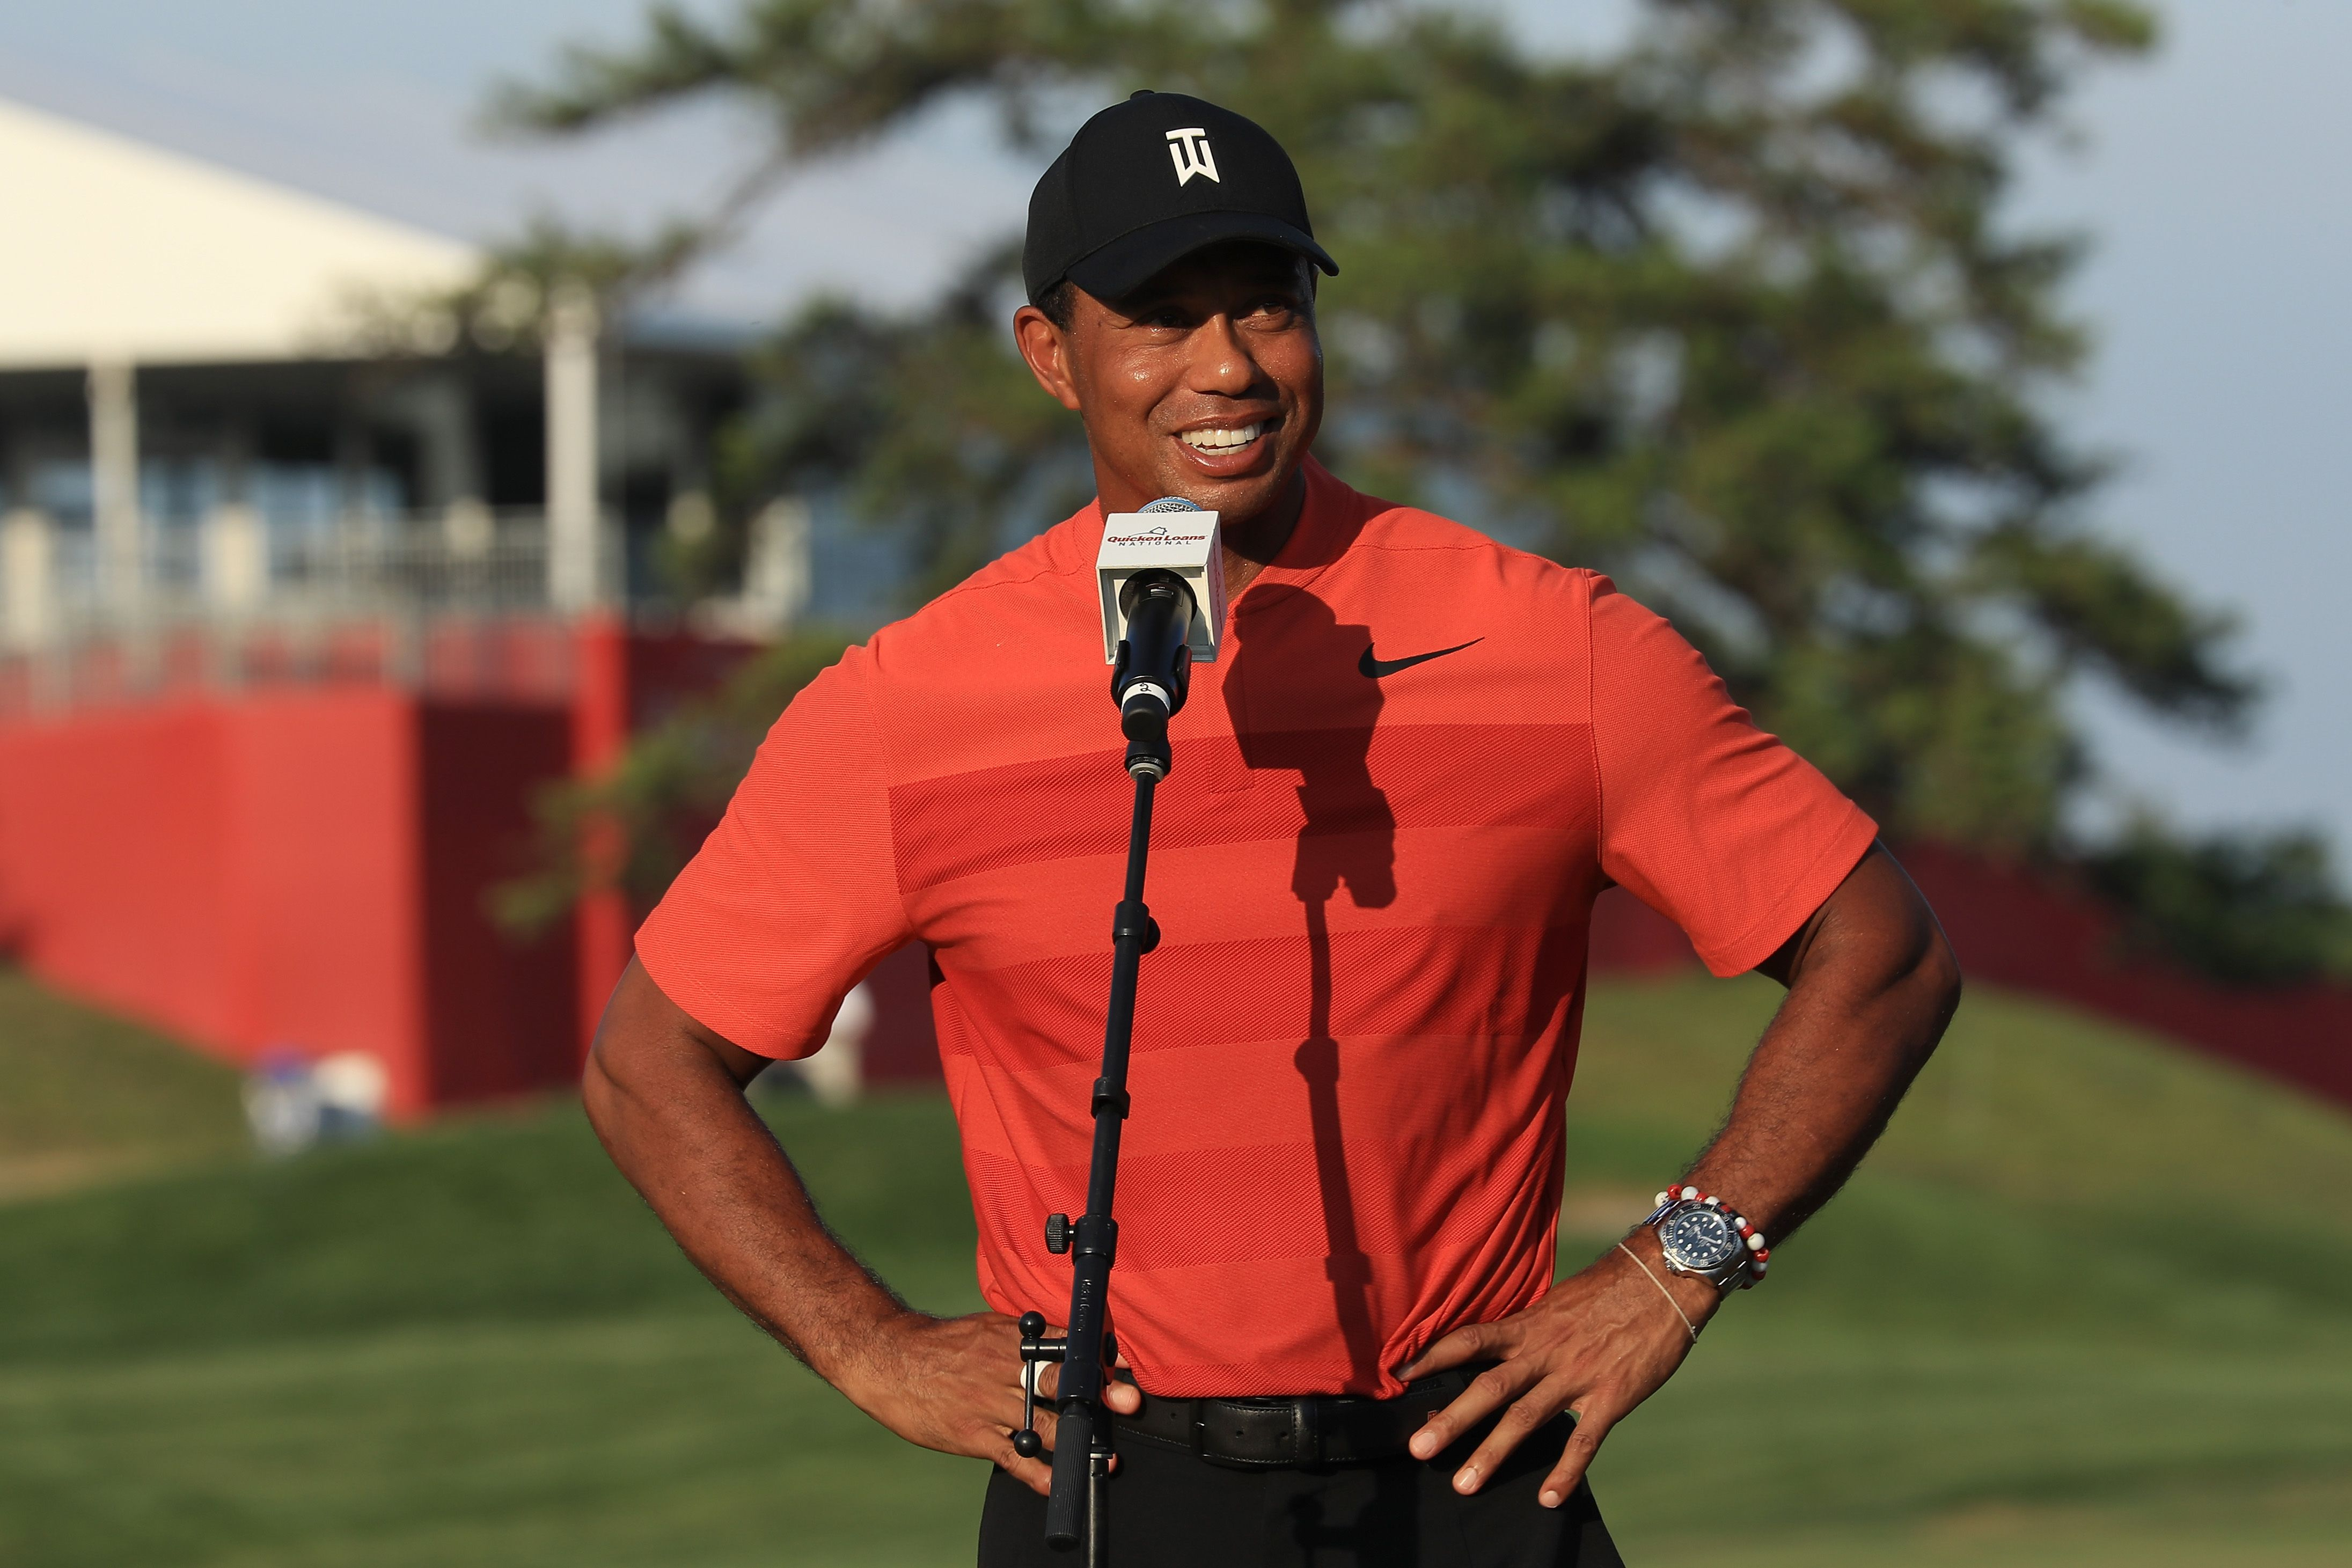 Tiger Woods during the trophy presentation at the Quicken Loans National at TPC Potomac on July 1, 2018 in Potomac, Maryland.   Source: Getty Images